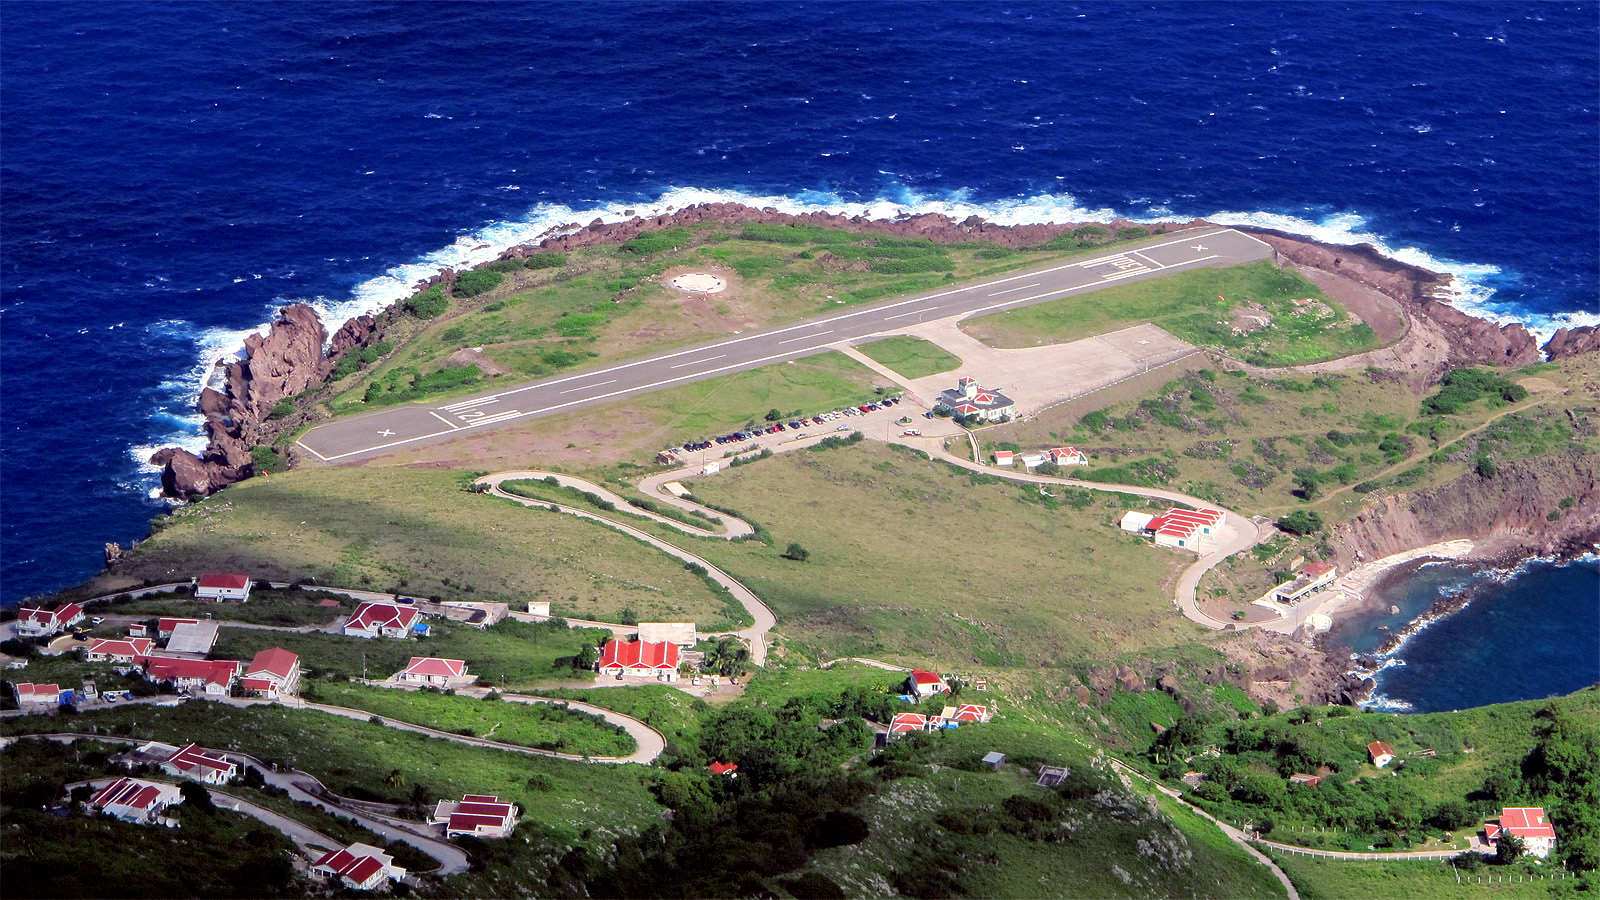 most_dangerous_airports_in_the_world_14_1